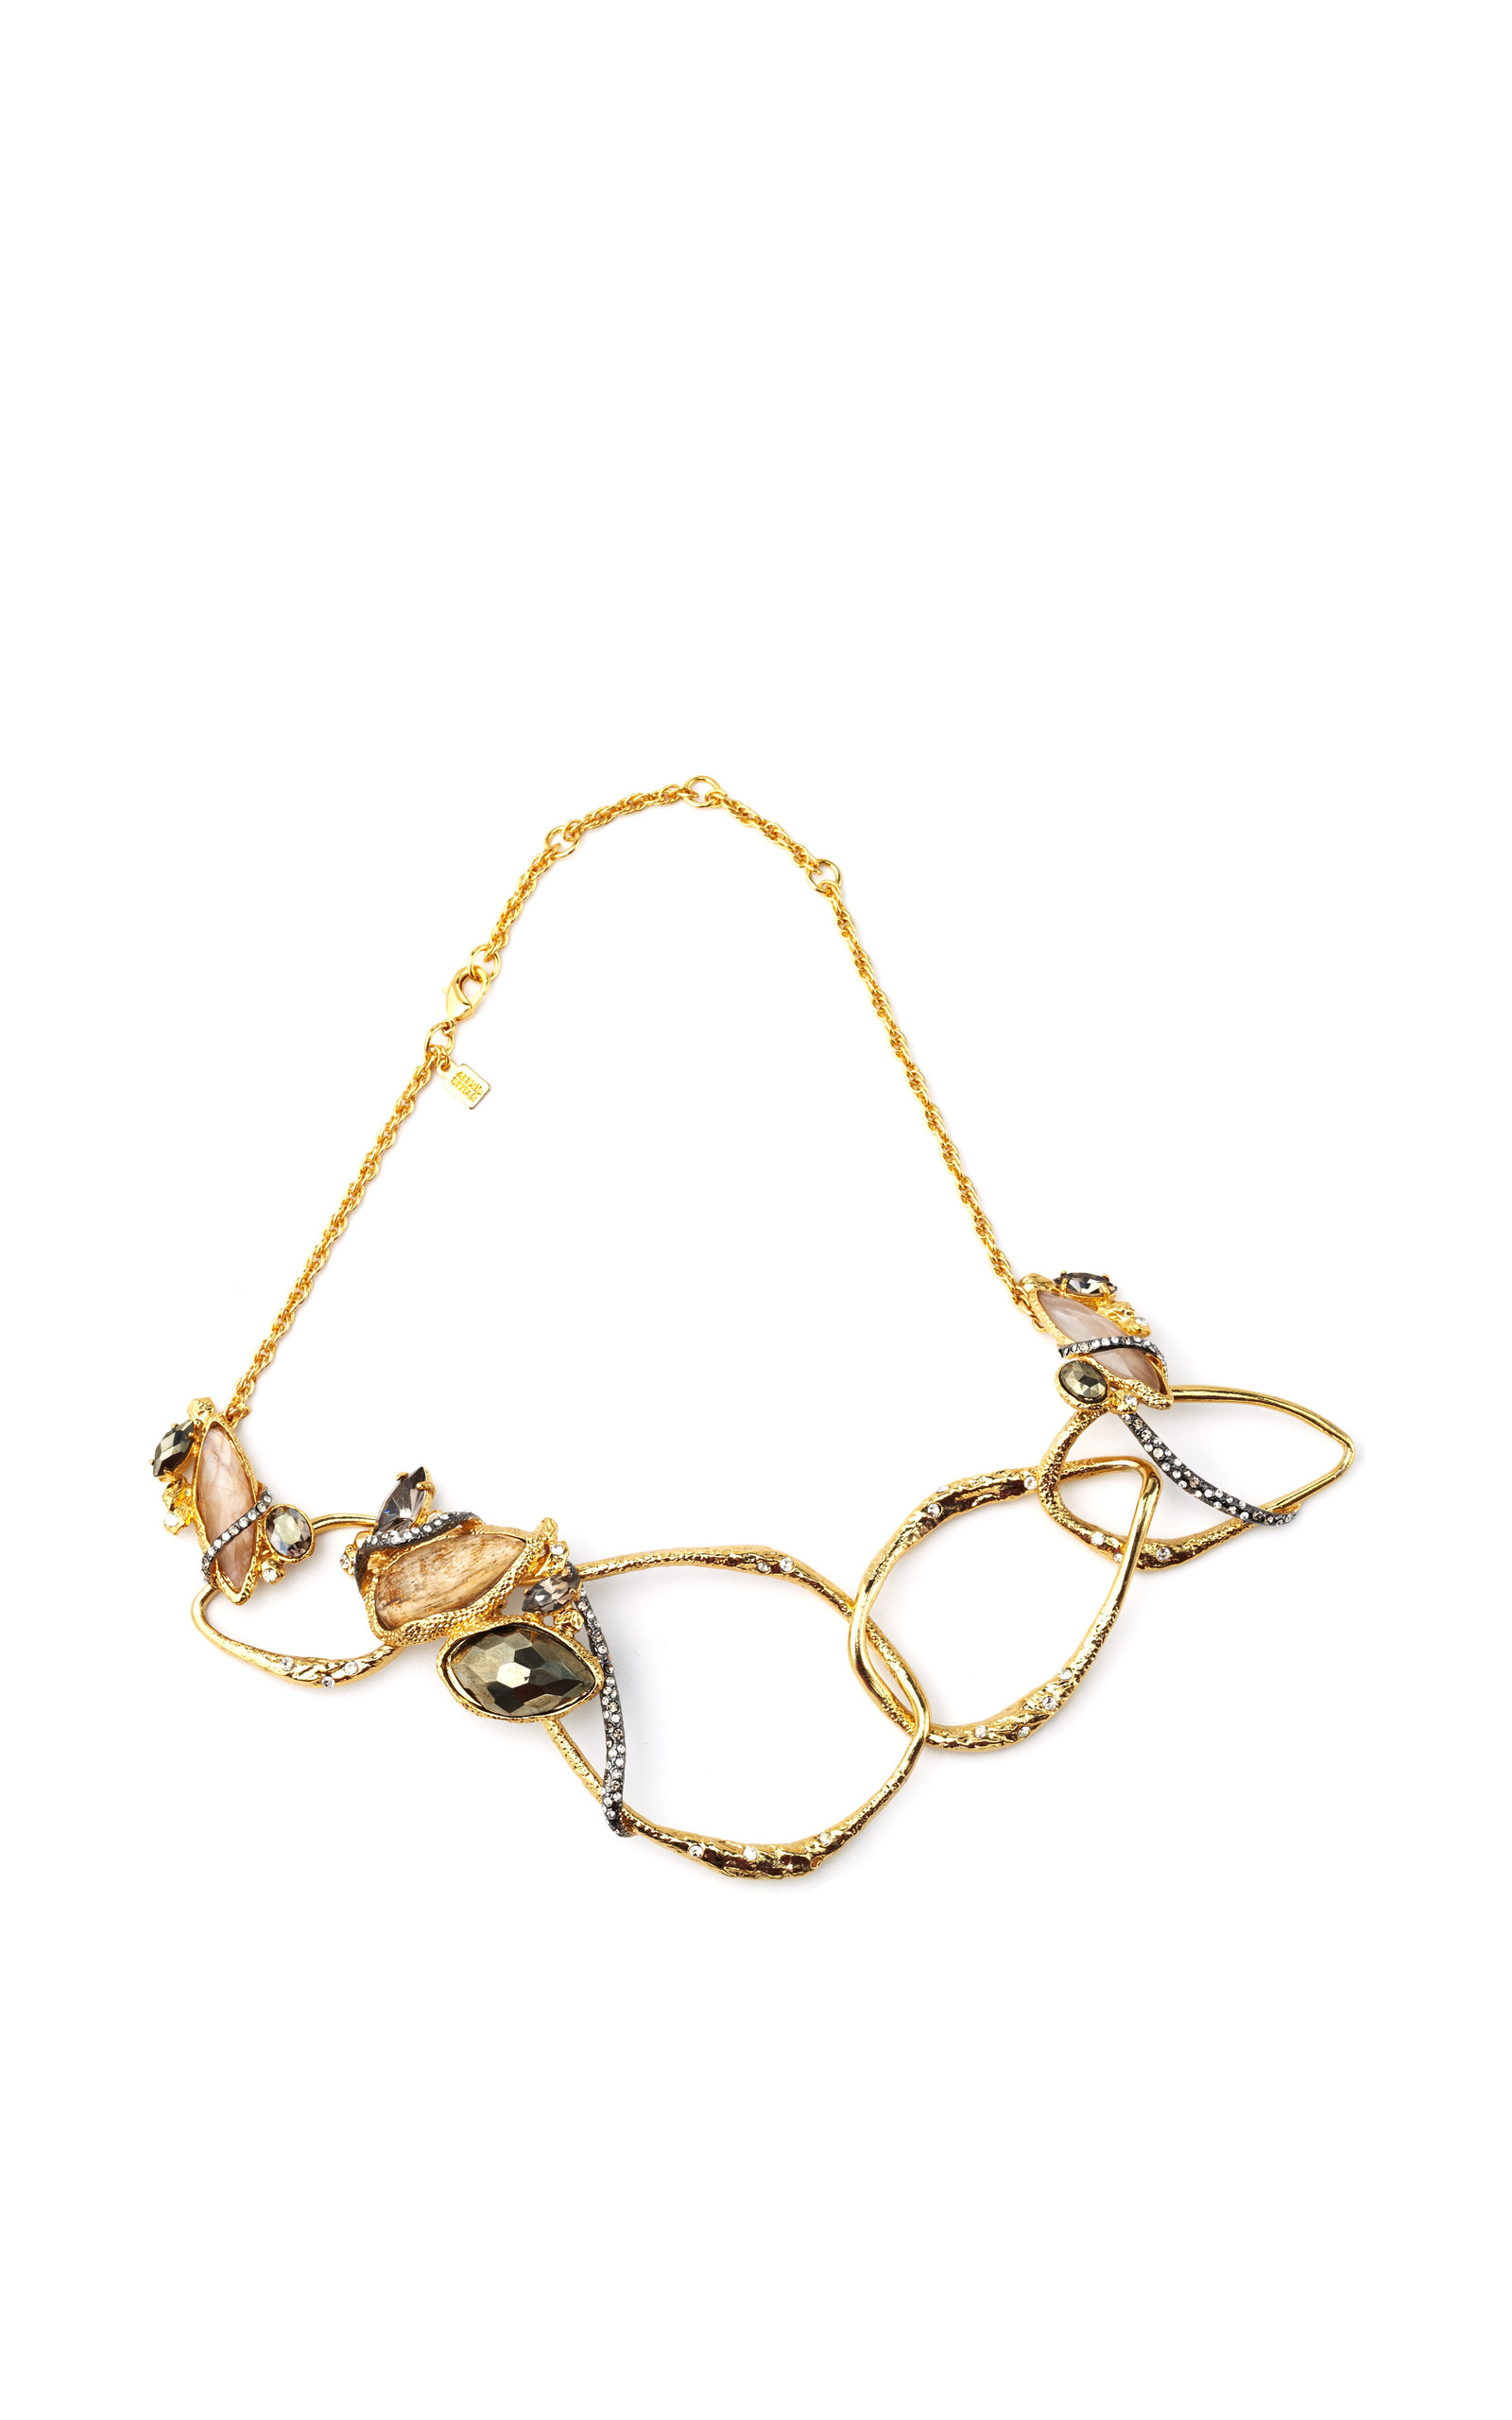 lucite bittar image alexis fwrd abit neo necklace in curb link product gold of bohemian